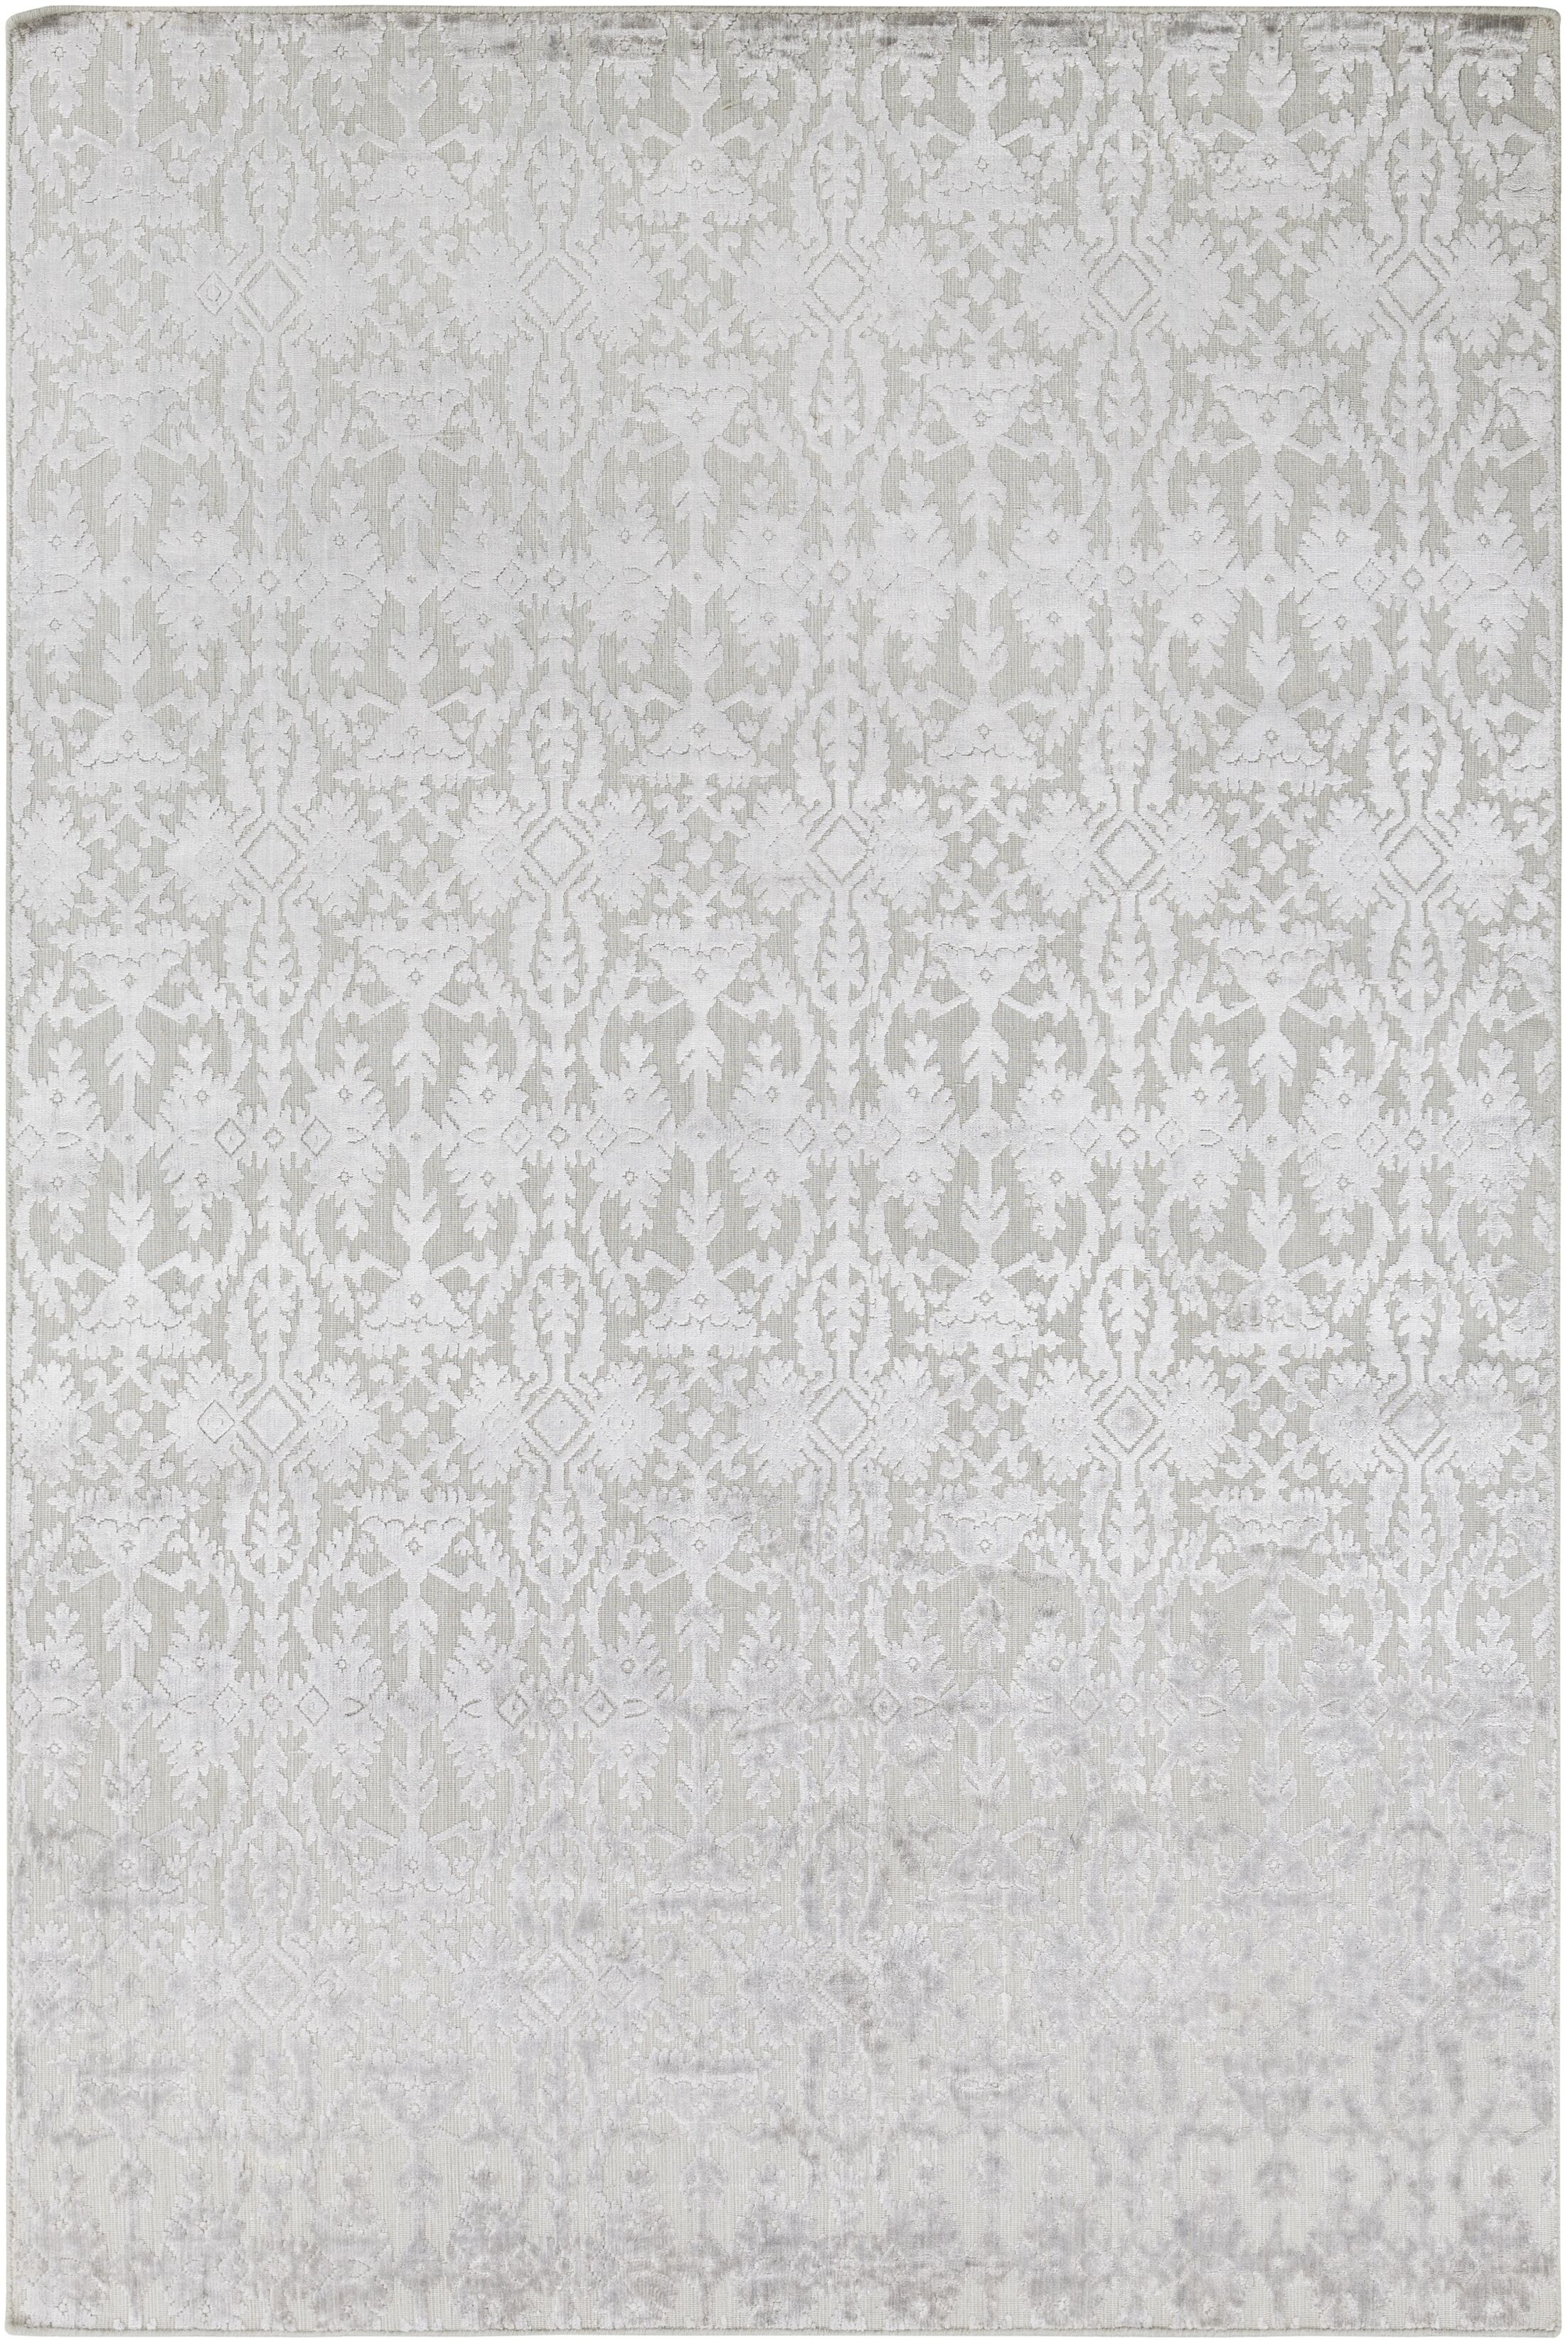 Rockland Hand-Knotted Light Gray Area Rug Rug Size: Rectangle 6' x 9'